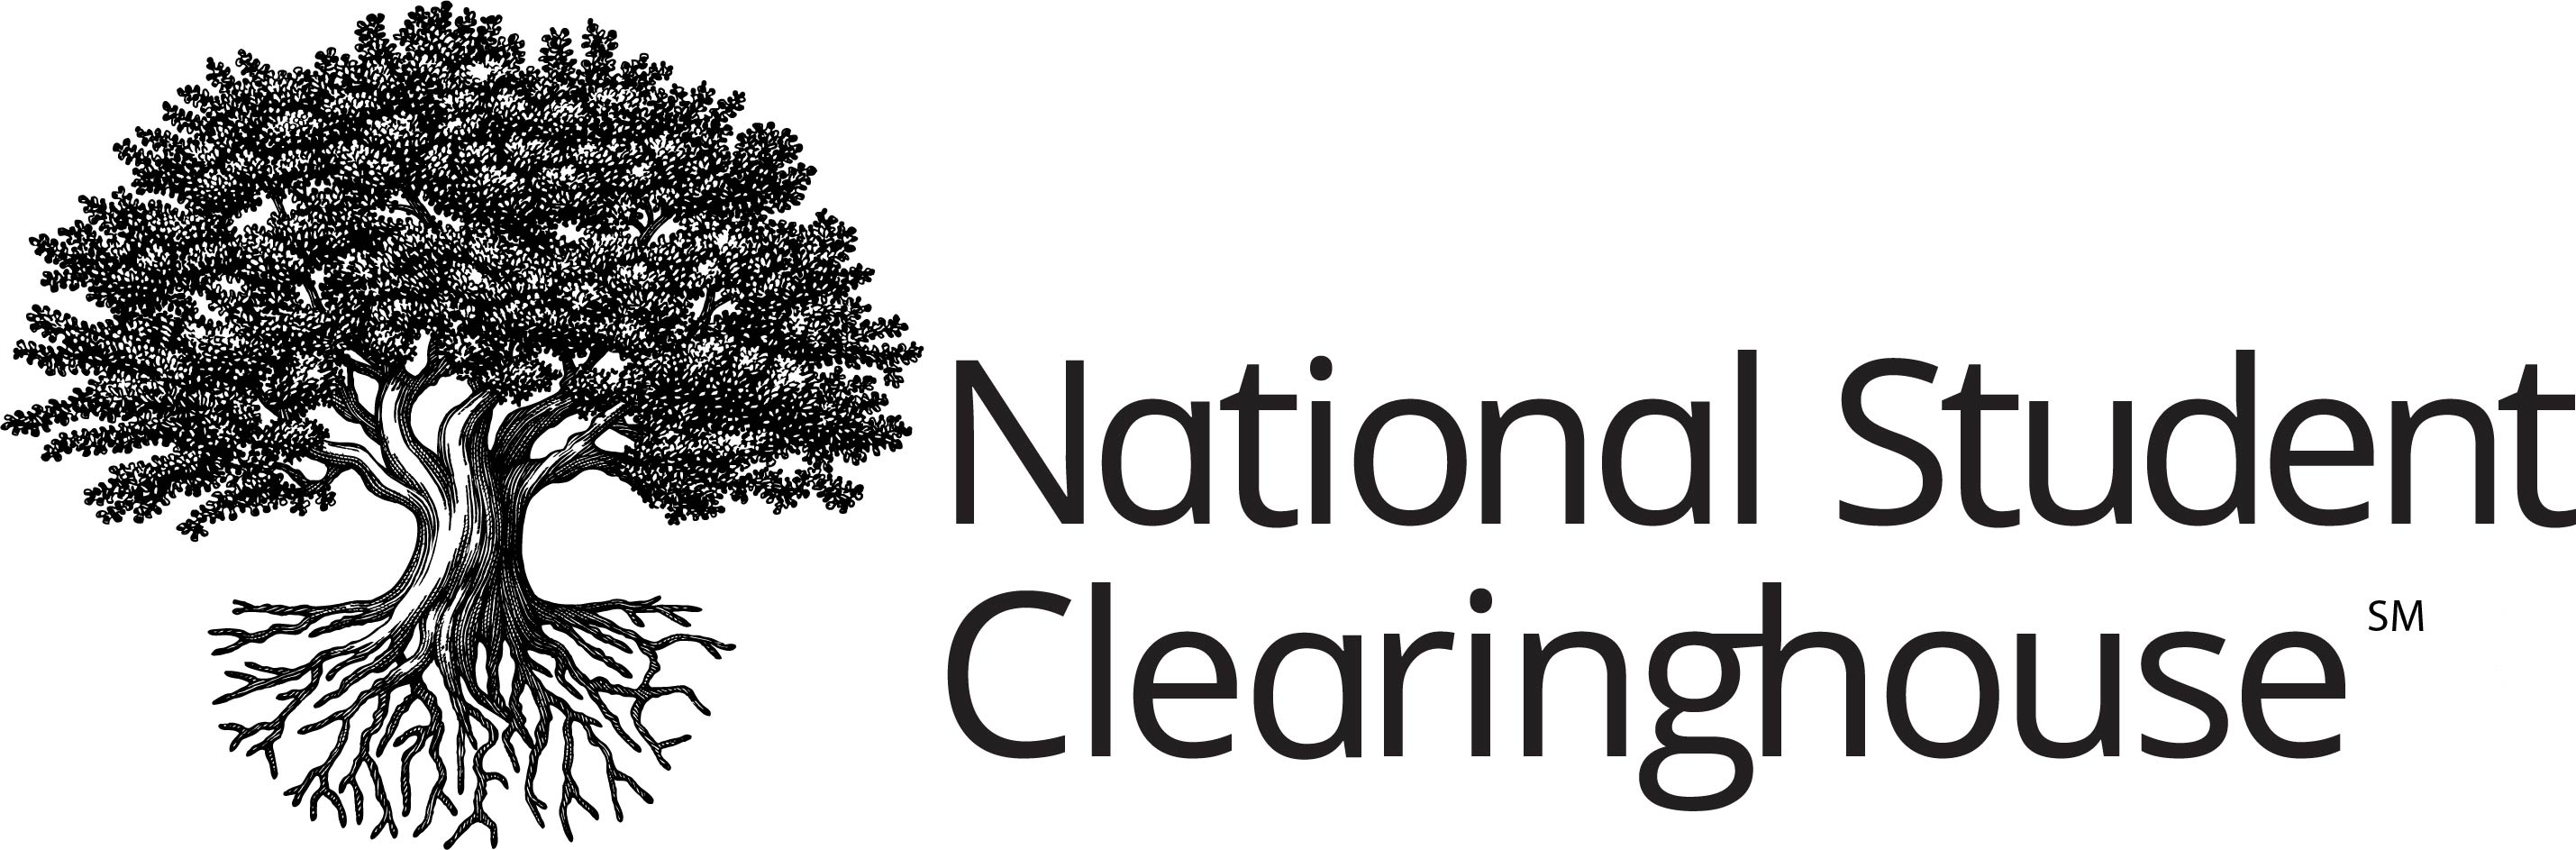 National Student Clearinghouse Updated Logo